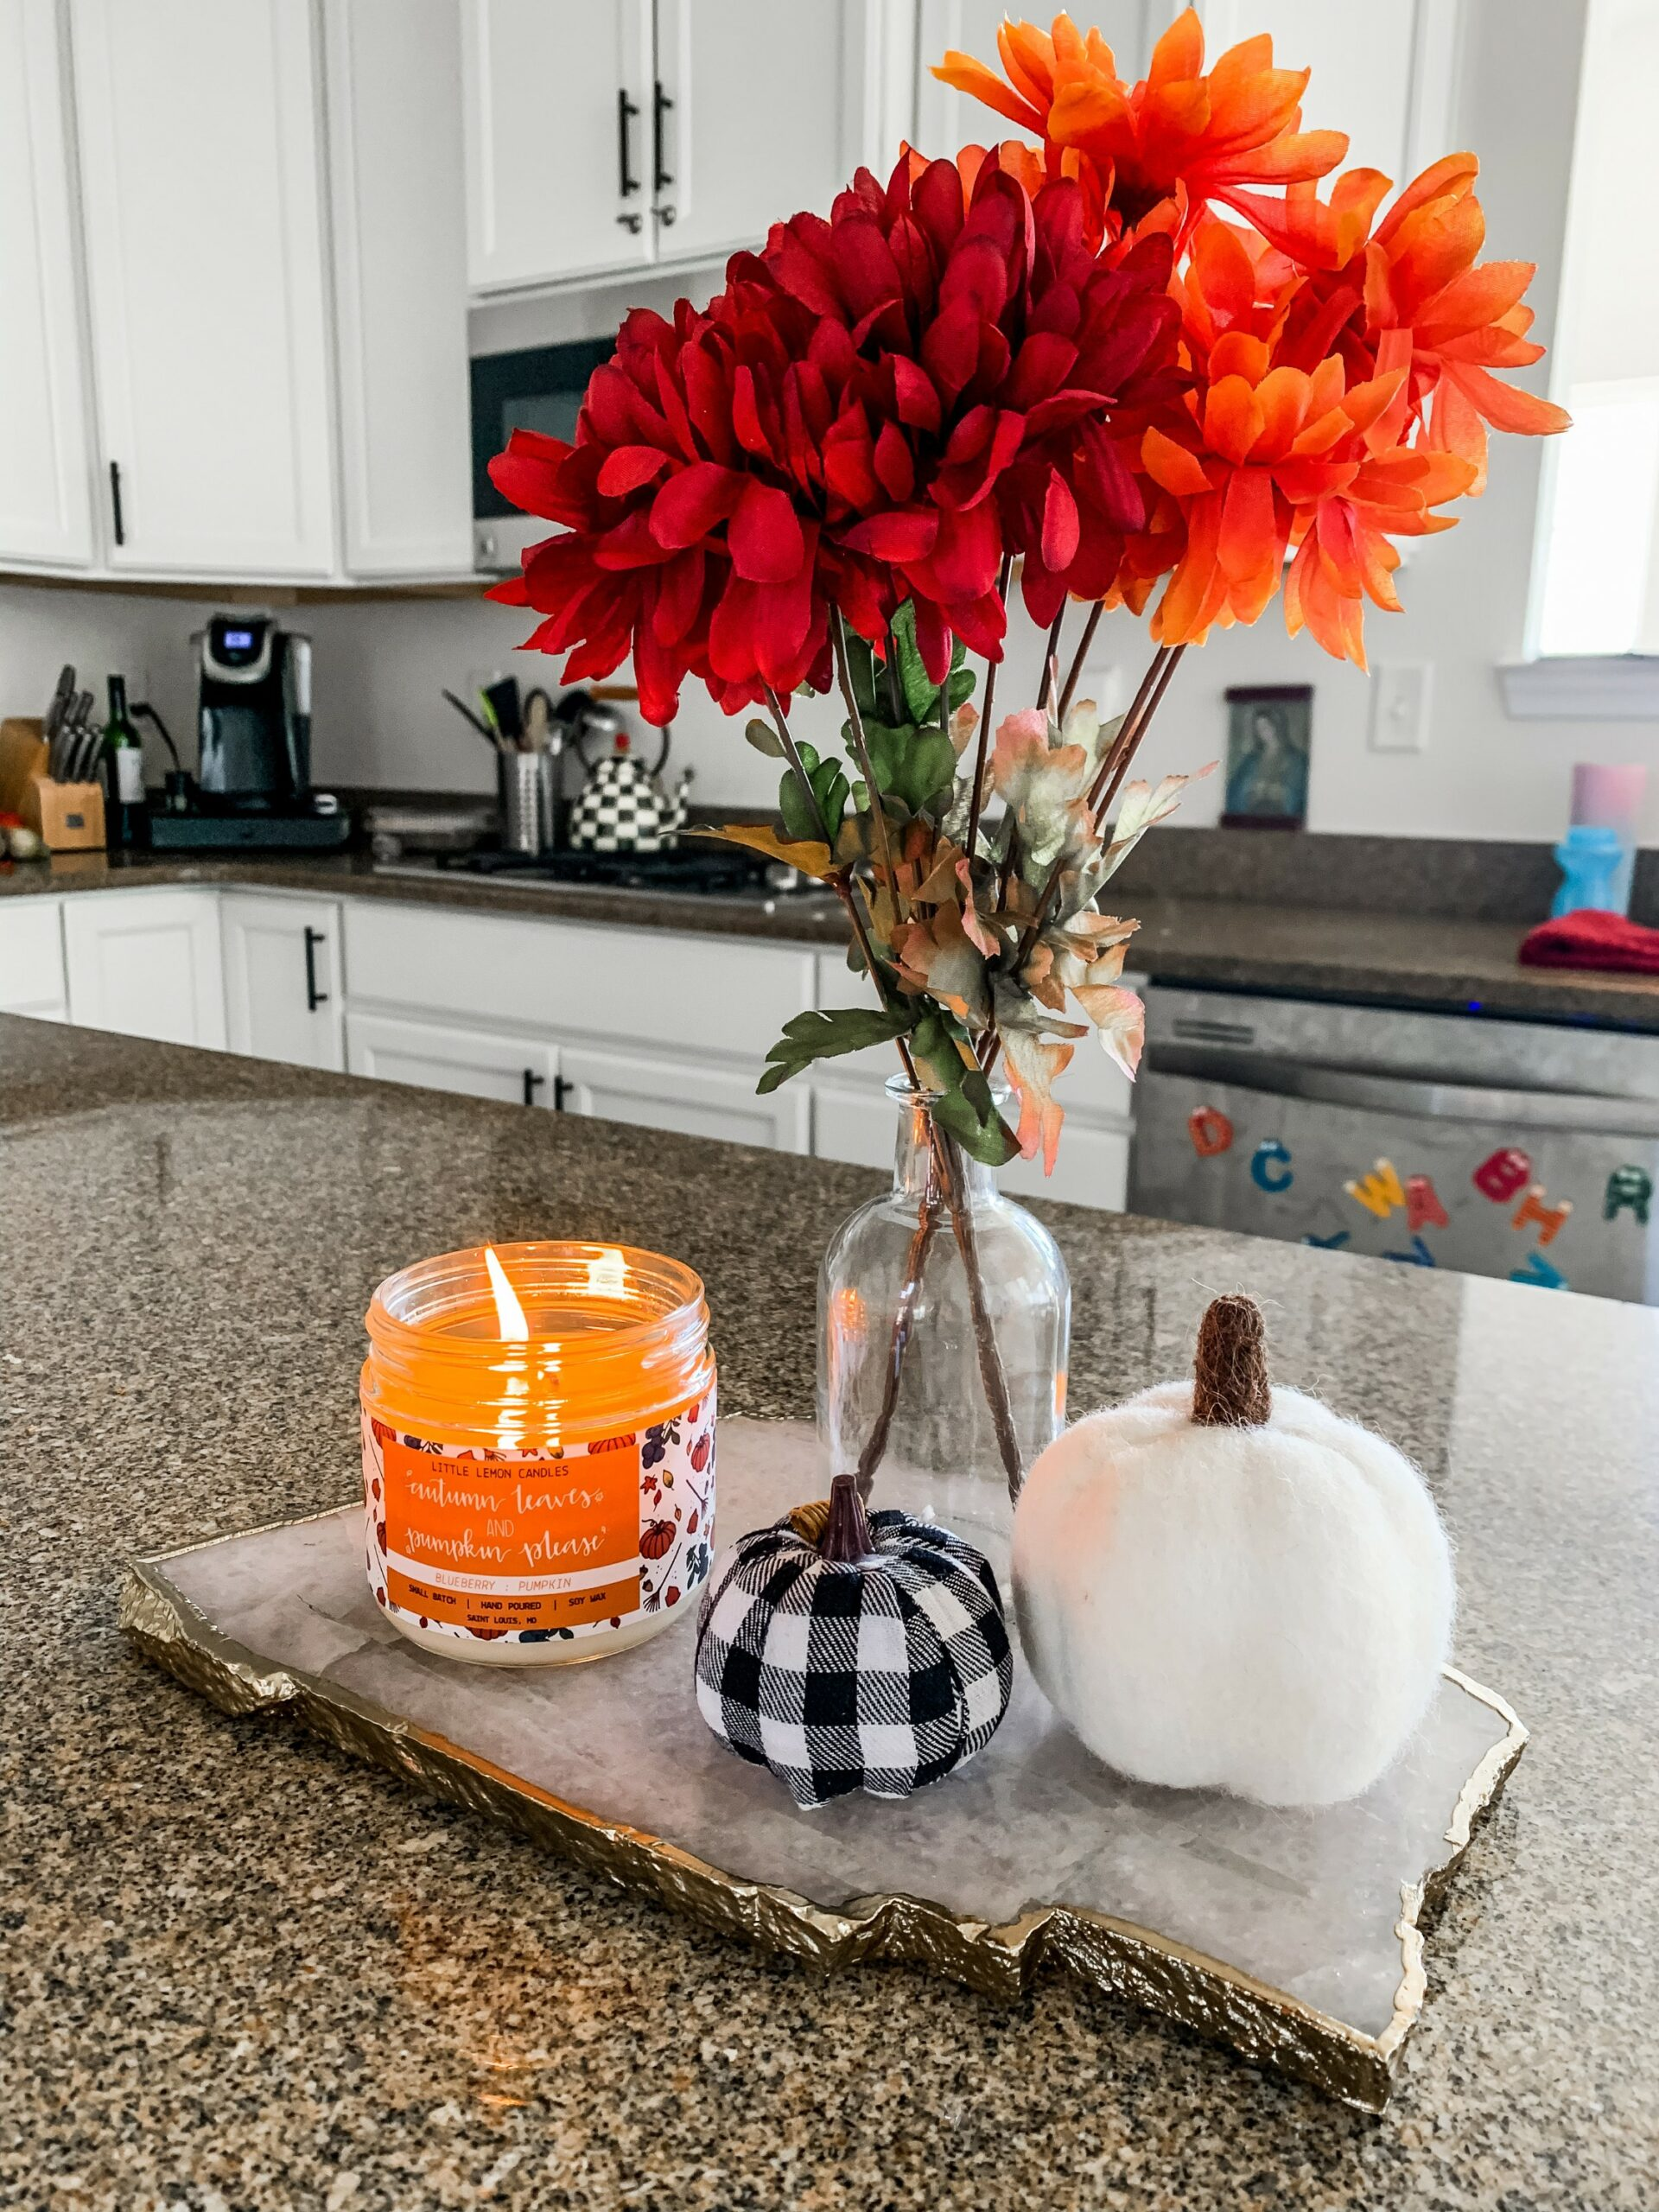 Fall decor ideas for a kitchen island